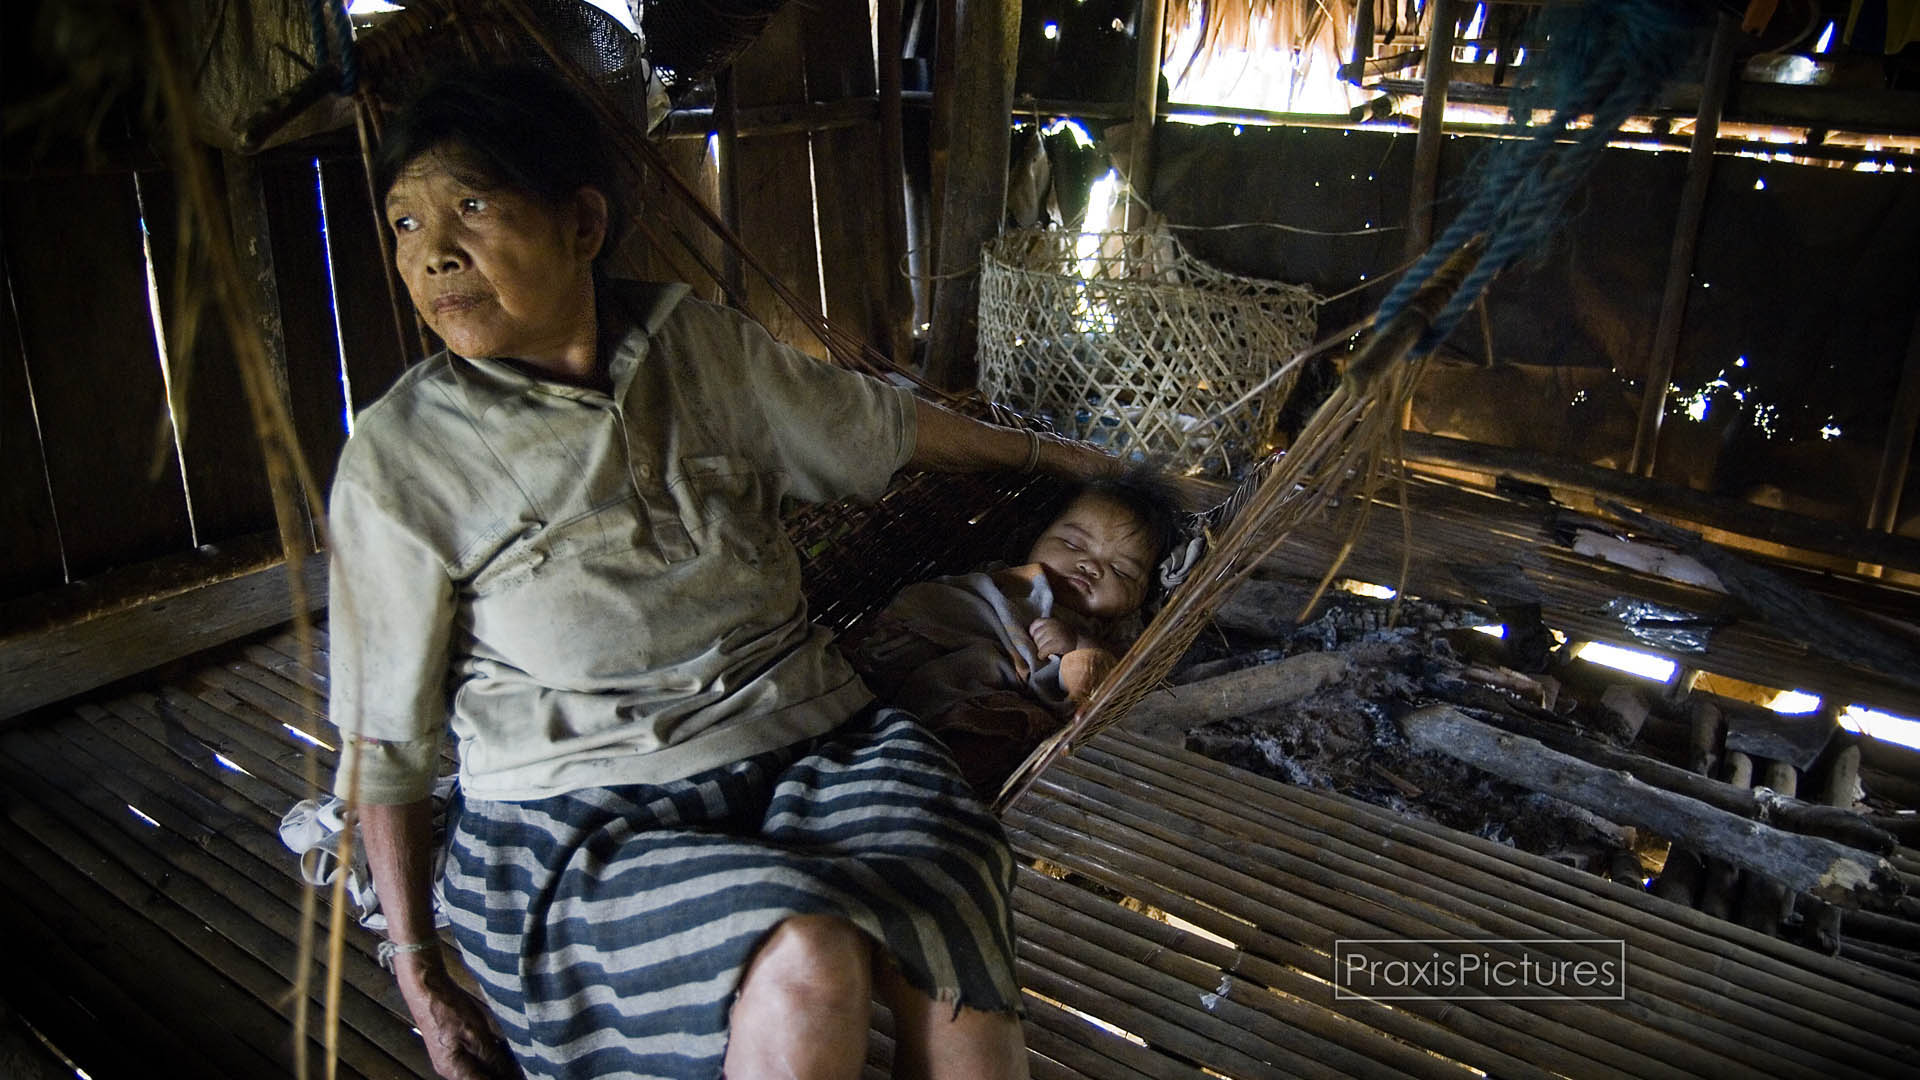 KISLUYAN  (VIDEO)    High in the mountains of the Philippine island of Mindoro, members of the Alangan tribe live in the village of Kisluyan, on the same land their ancestors have lived on for generations. Kisluyan is one of 26 indigenous villages that face the threat of displacement by the Mindoro Nickel Project, a proposed open pit nickel mine on their ancestral land.   (5:49 minutes)